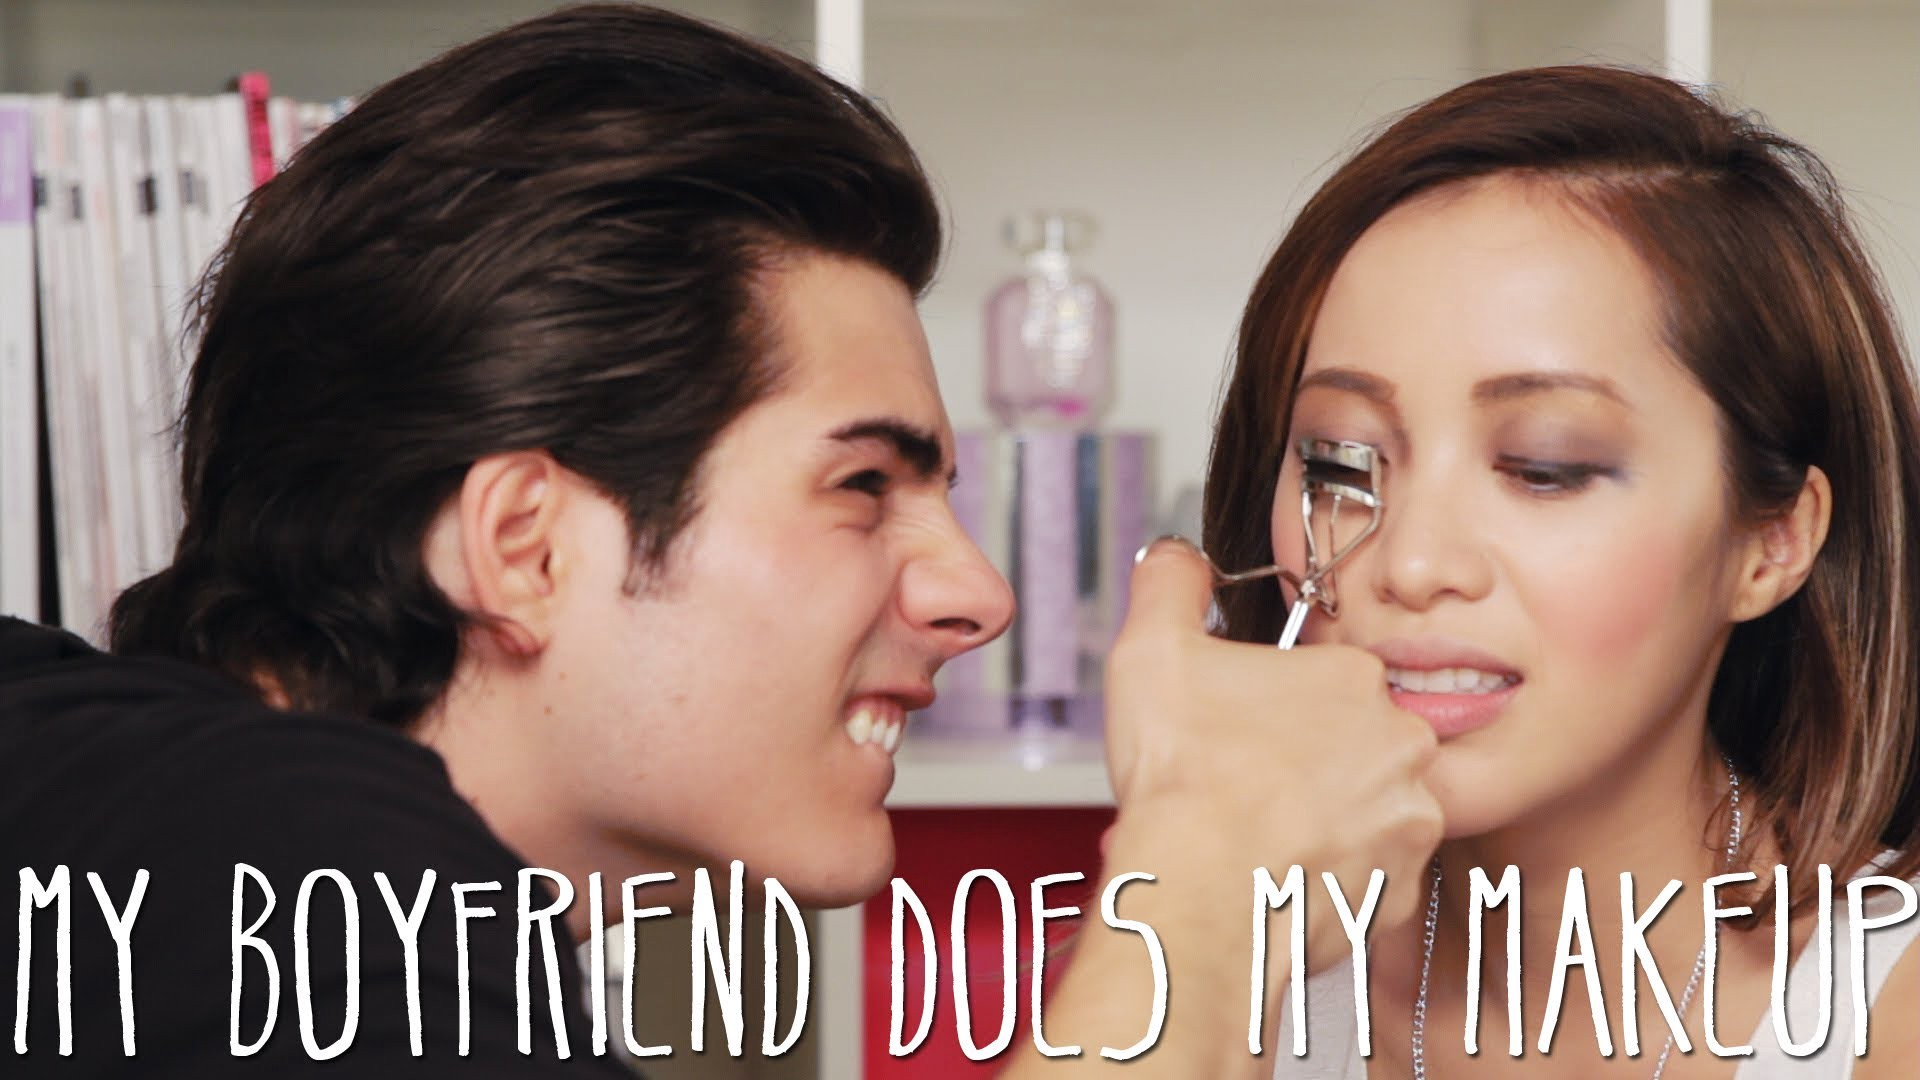 Youtube Trends Boyfriend Does My Makeup Tag